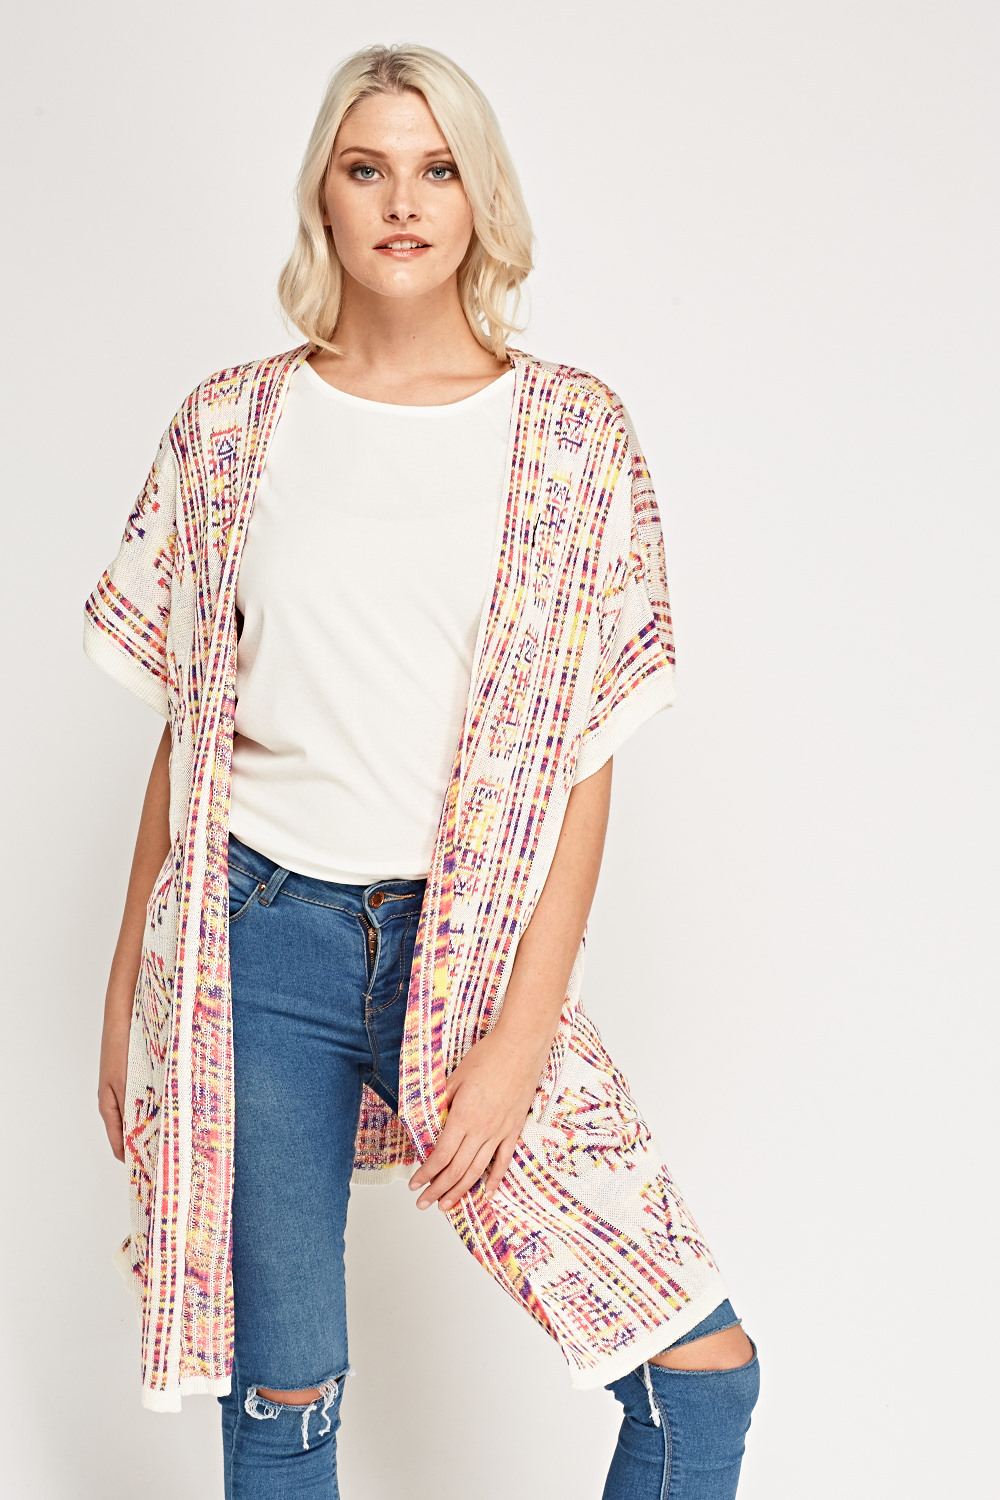 Short Sleeve Open Front Knitted Cardigan - White/Multi - Just £5